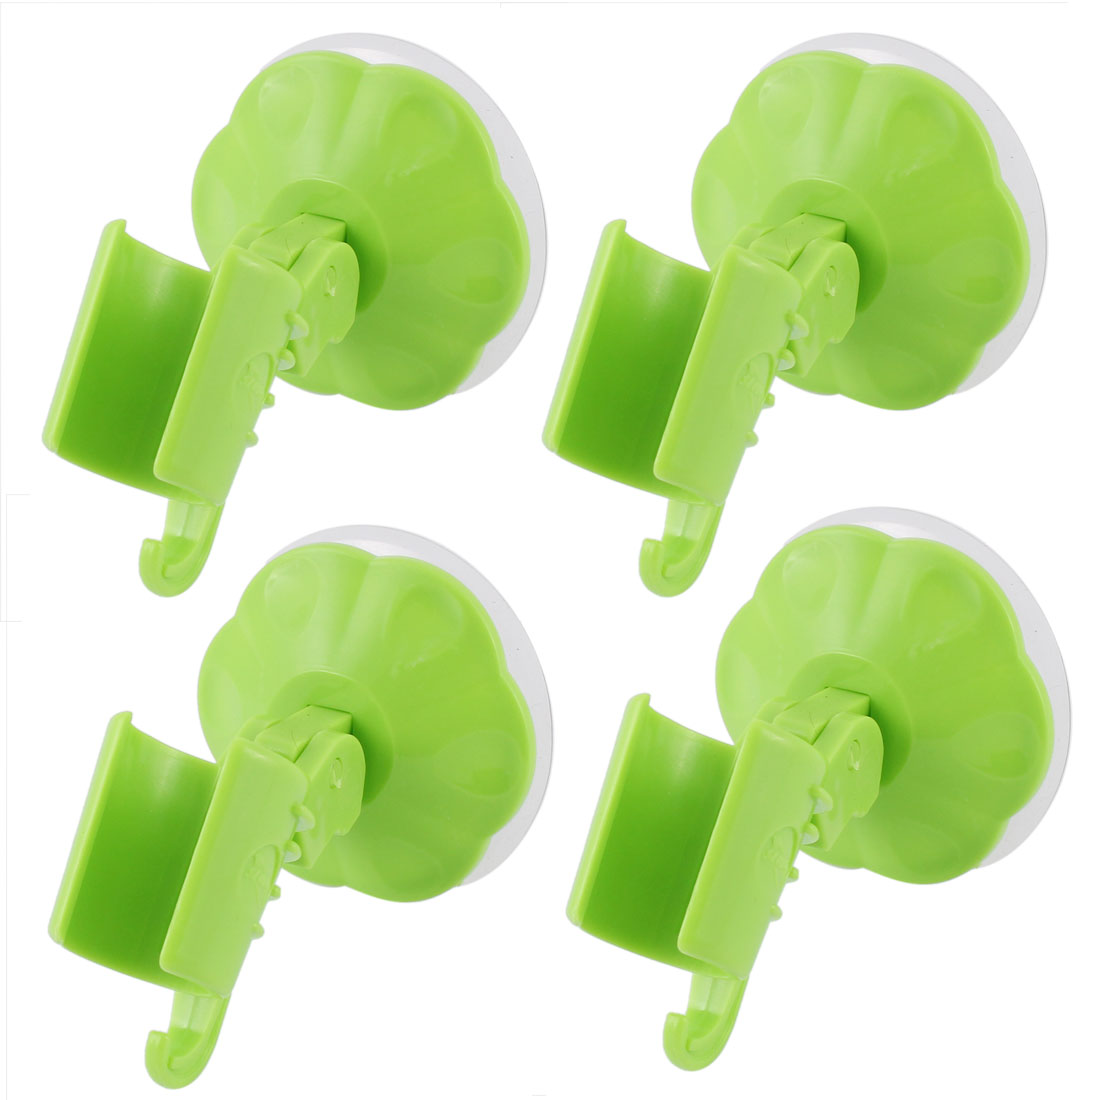 4pcs Attachable Bathroom Shower Head Holder Wall Suction Cup Bracket Green